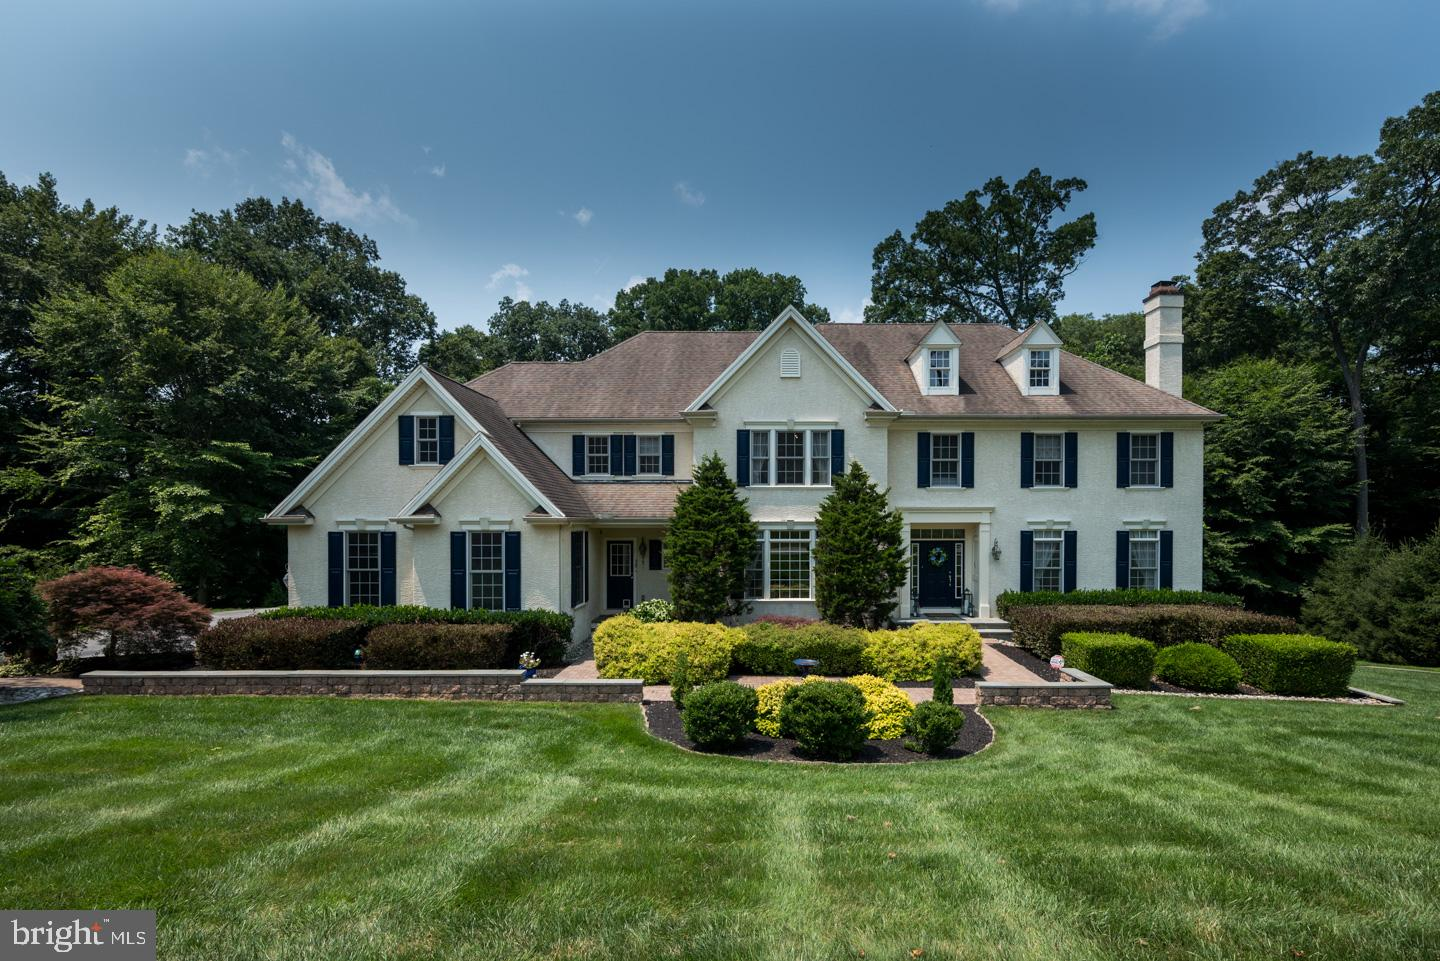 Welcome to 915 Shenandoah Lane, in the highly regarded community of Shenandoah.  Perched amidst 1 acre of land with a backdrop of the lush Chester County landscape, this elegant home offers over 5,800 square feet of bright and well-appointed living space.  Featuring an open floorplan, gourmet kitchen and butler's pantry, breakfast room, first-floor library/office, dual staircases, 5 fireplaces, finished walk-out lower level with full bath, two outdoor entertaining spaces, 3-car garage, security system, sprinkler system, and high-end details you will appreciate.  A meticulously manicured landscape and custom hardscape with stone detailing and walkways welcome you to this stately home.  Step inside to an expansive foyer with an inspiring, two-story window view of the greenery that surrounds this home.  On either side of the foyer, gracefully arched entryways lead to the formal Dining Room and Living Room with wood-burning fireplace, both with lovely crown and chair moldings. Flow into the open floorplan joining the expansive kitchen, great room, and breakfast room; the ideal space to savor your everyday routine.  This kitchen features 42-inch cabinets with undermount lighting, granite countertops, 2-tier large center island with seating, stainless steel appliances, and perfectly equipped butler's pantry just around the corner with wine refrigerator. Opening to the kitchen is the bright & spacious great room with vaulted ceiling, floor-to-ceiling stone fireplace, and windows on three sides providing beautiful natural light.  Off the kitchen is the bright & airy breakfast room which extends outside to the private custom deck, where you won't see a soul. With tree-top and sunset views through the trees, gas fireplace, and curved counter & seating area, you may just spend all of your time here relaxing, dining, entertaining, or just enjoying the fruits of your labor. Finishing out the first level is a beautiful library/office with built-in shelving, a powder room, a large